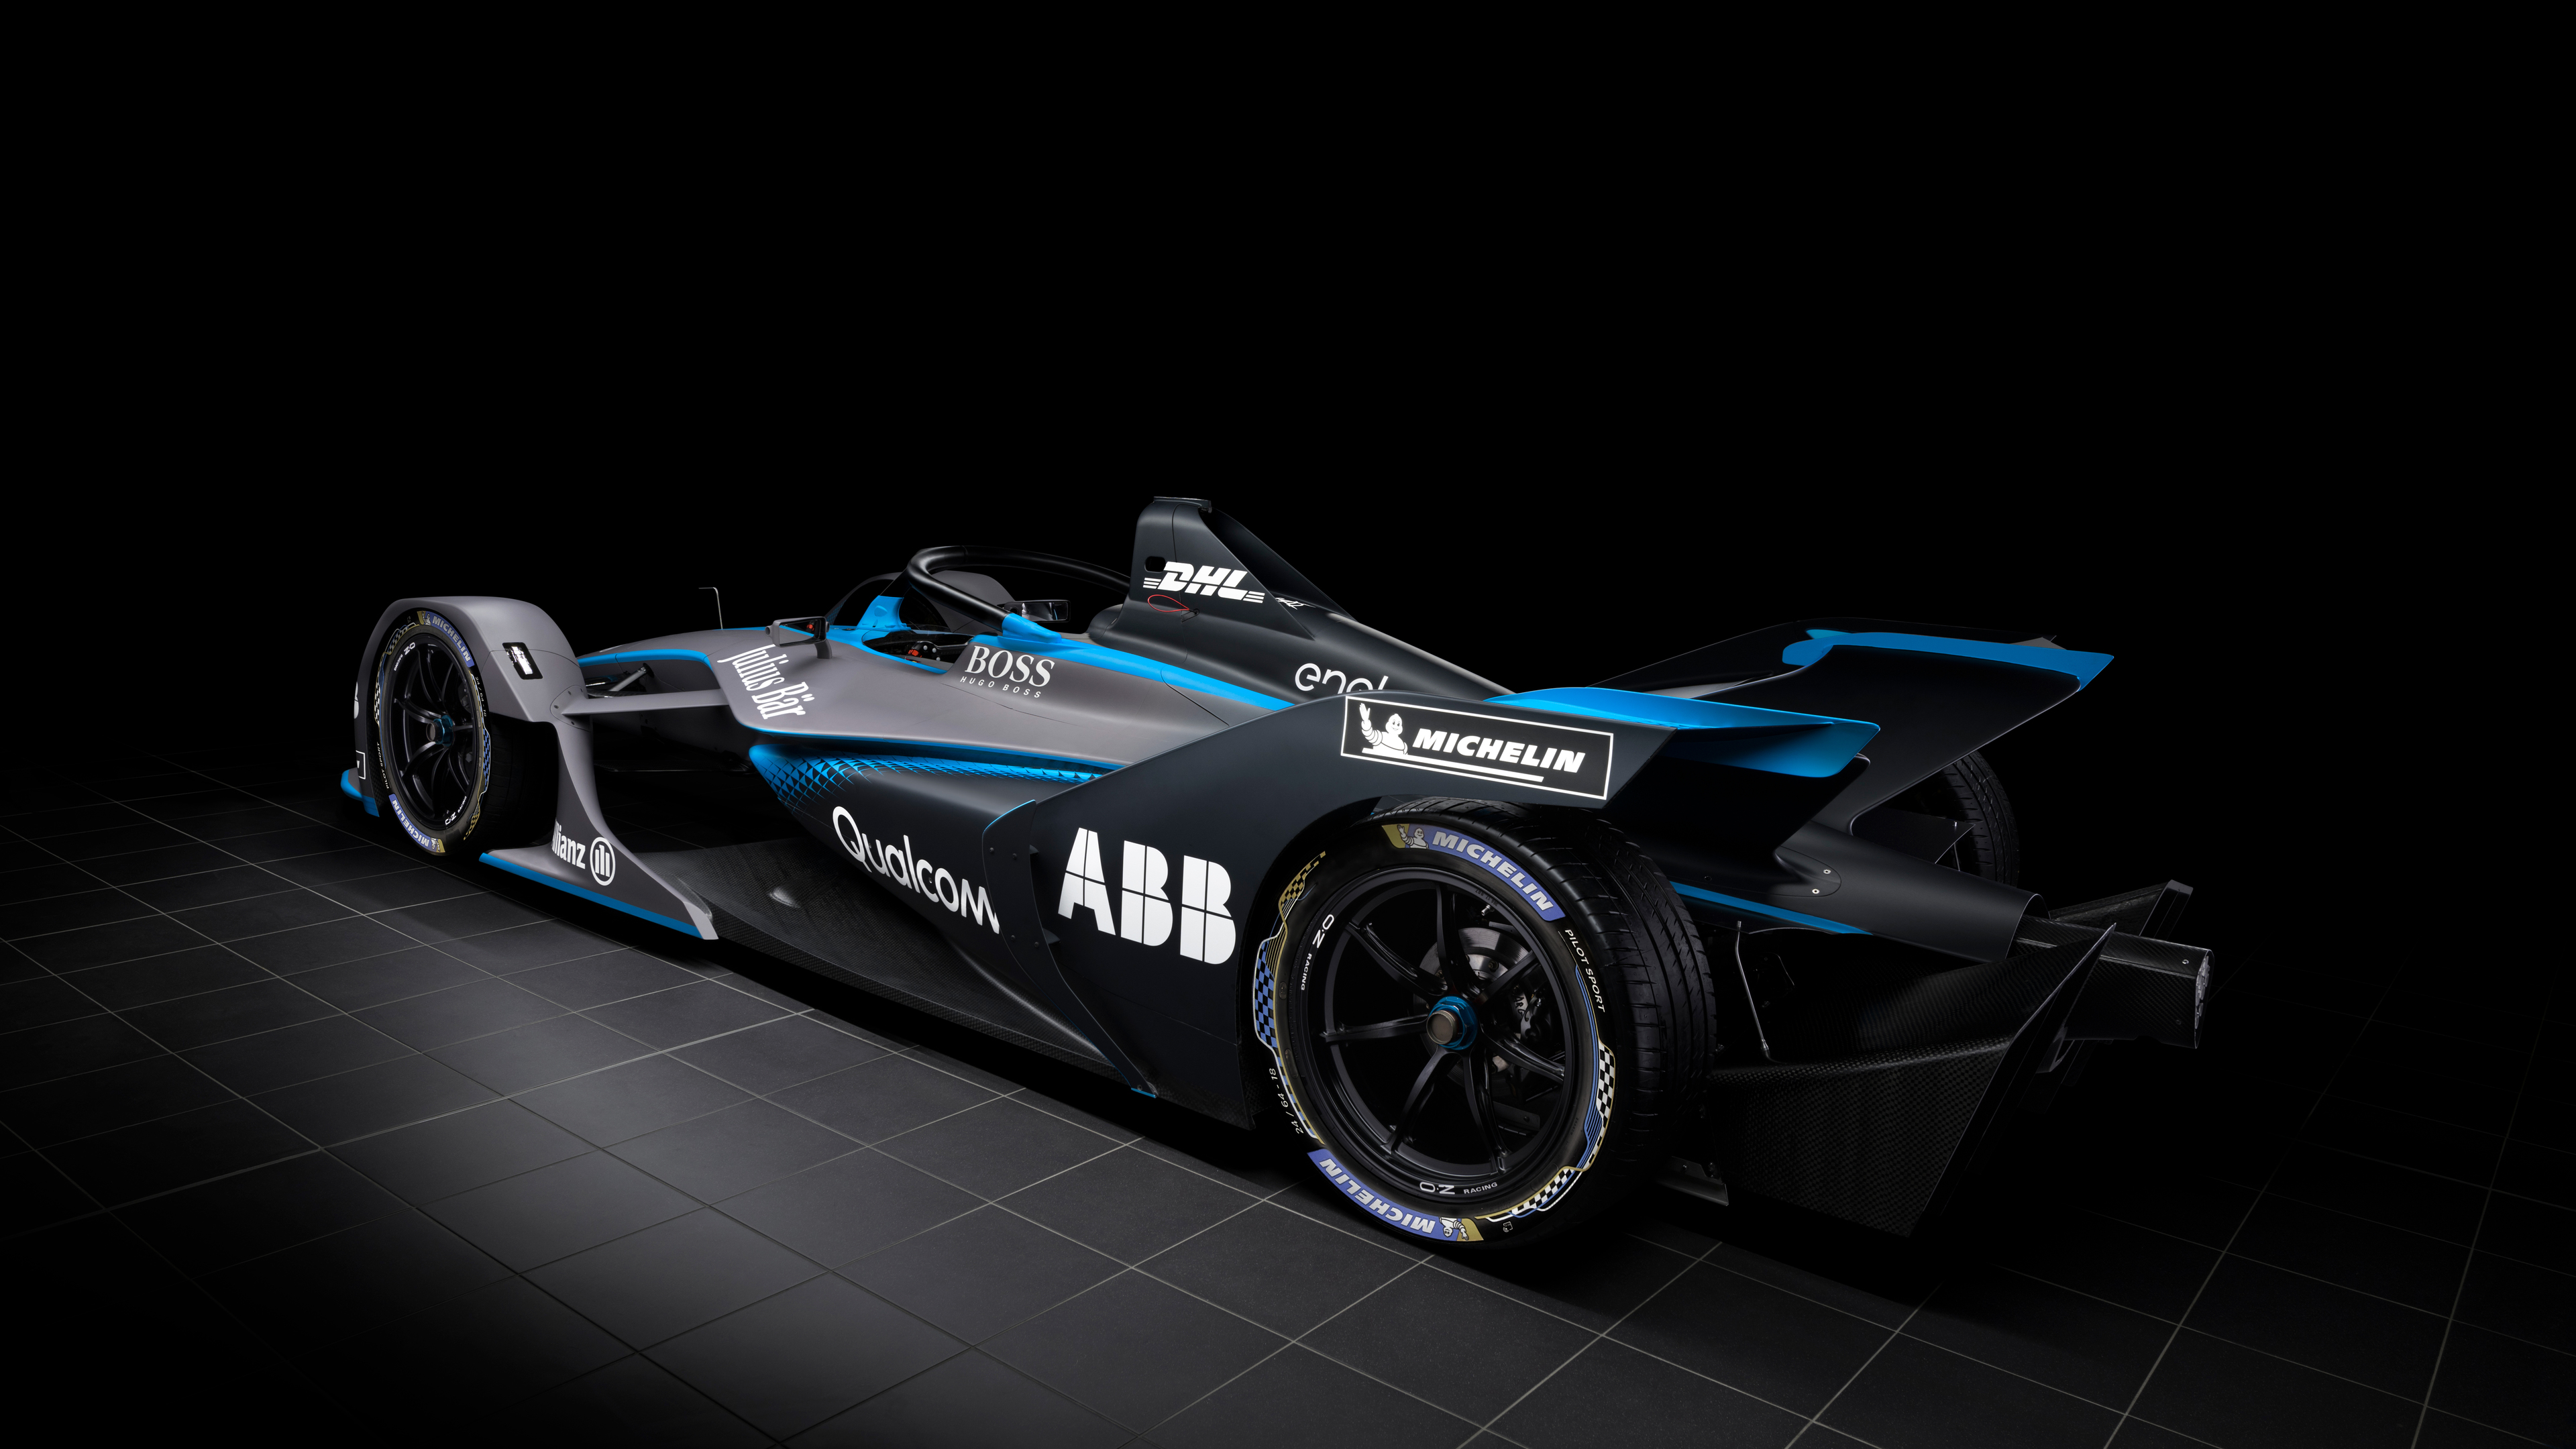 2018 fia formula e gen2 race car 4k 1547936821 - 2018 FIA Formula E Gen2 Race Car 4k - hd-wallpapers, f1 wallpapers, cars wallpapers, 8k wallpapers, 5k wallpapers, 4k-wallpapers